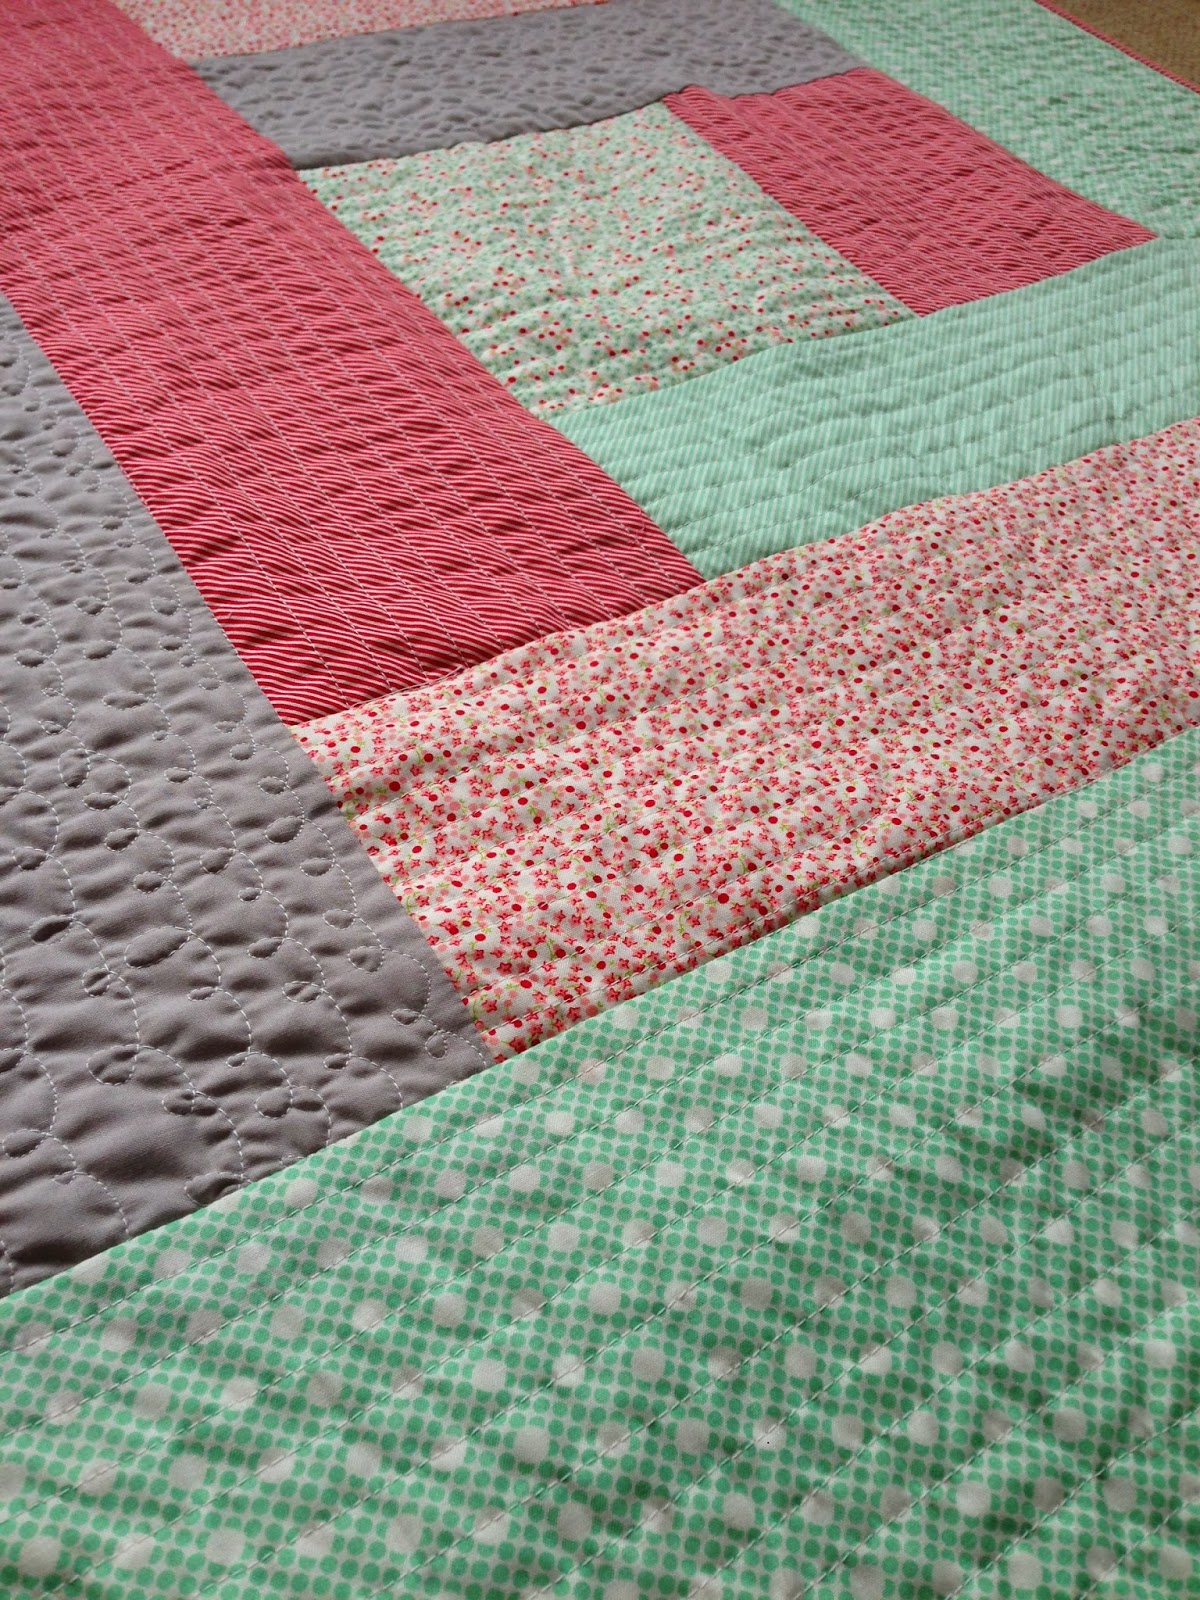 Quilt As You Go Log Cabin Tutorial